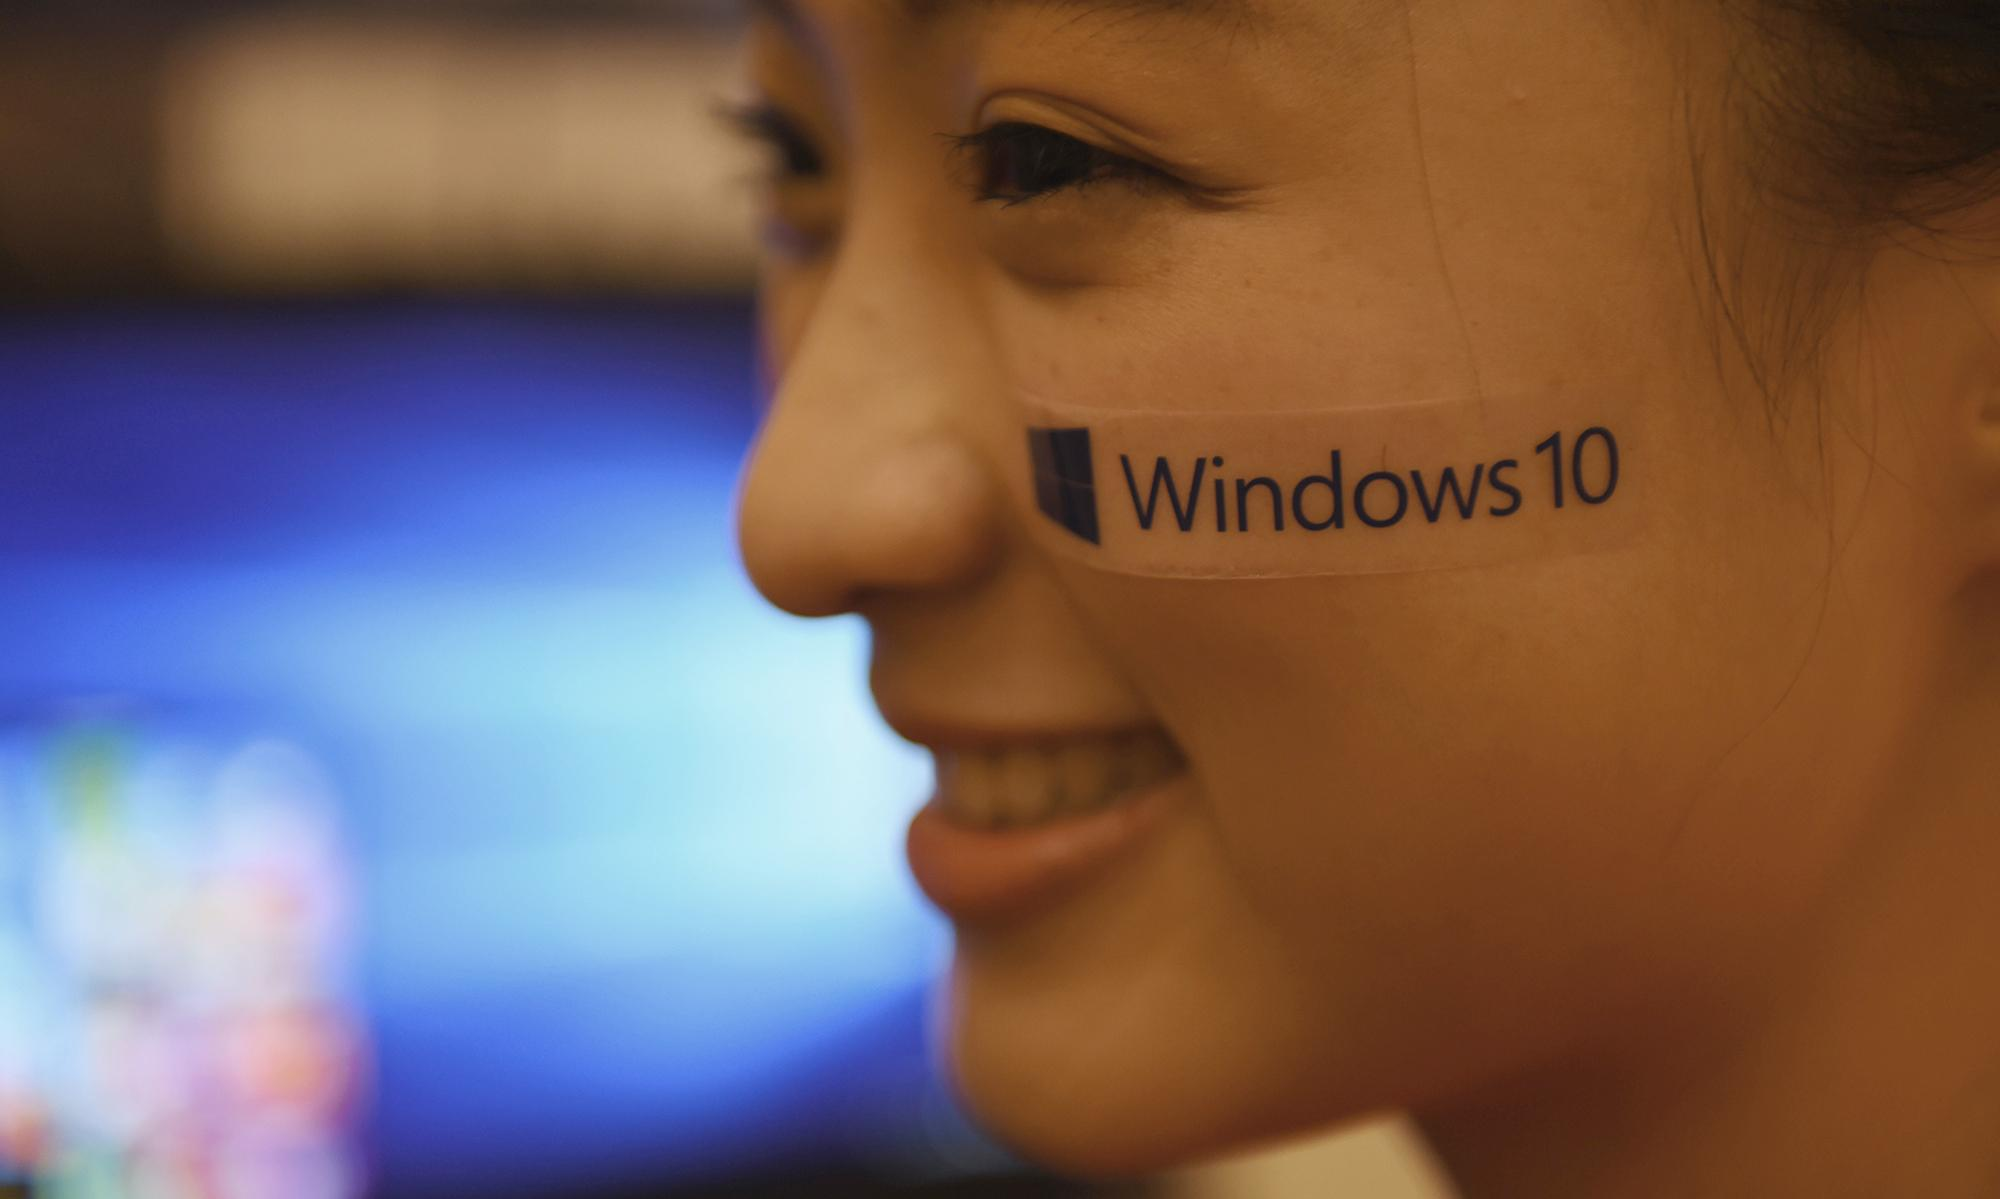 Windows 10 launched so quietly you may have missed it